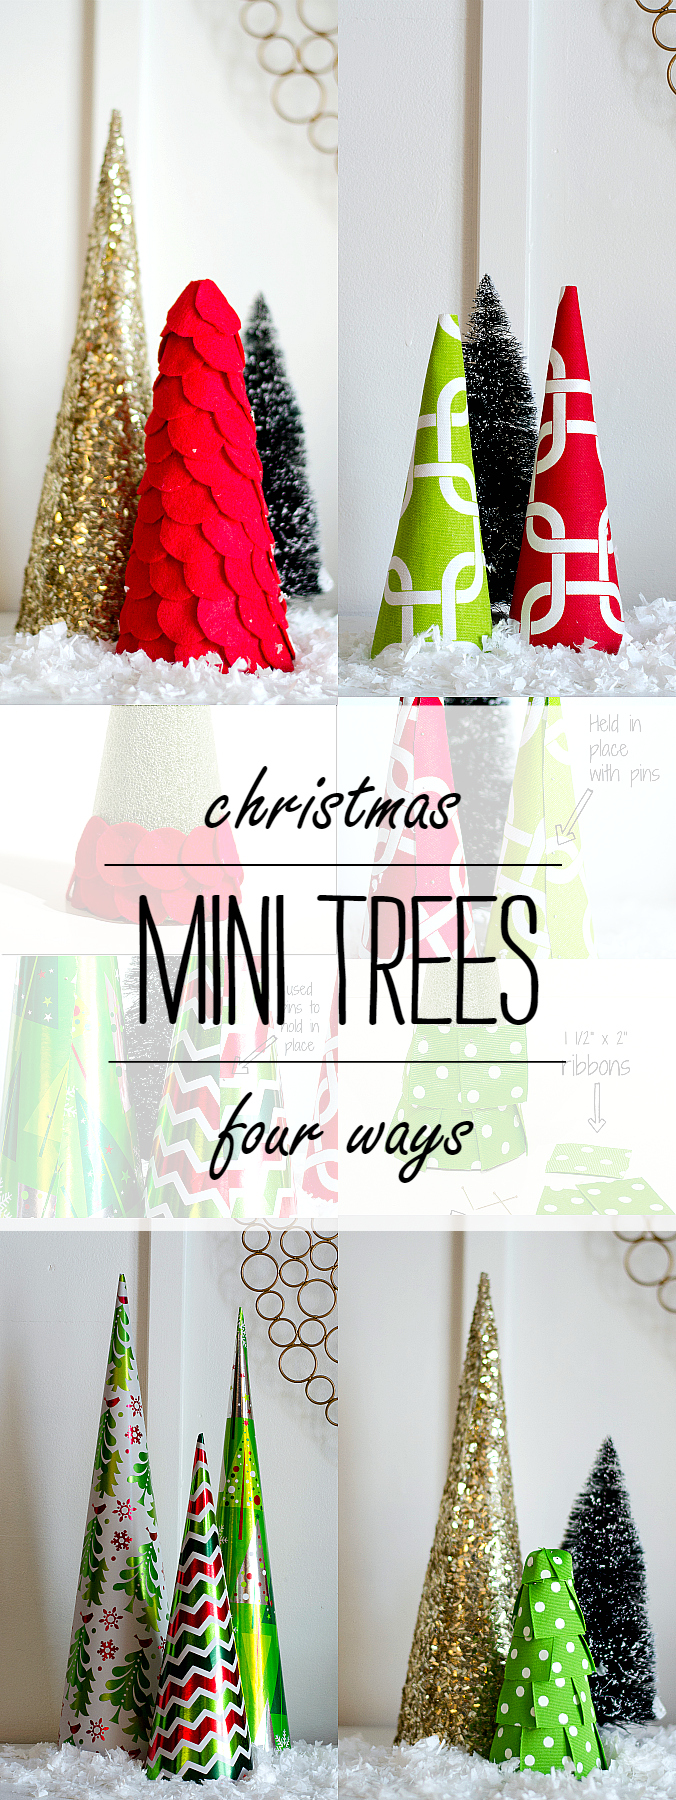 Christmas Crafts - Mini Trees